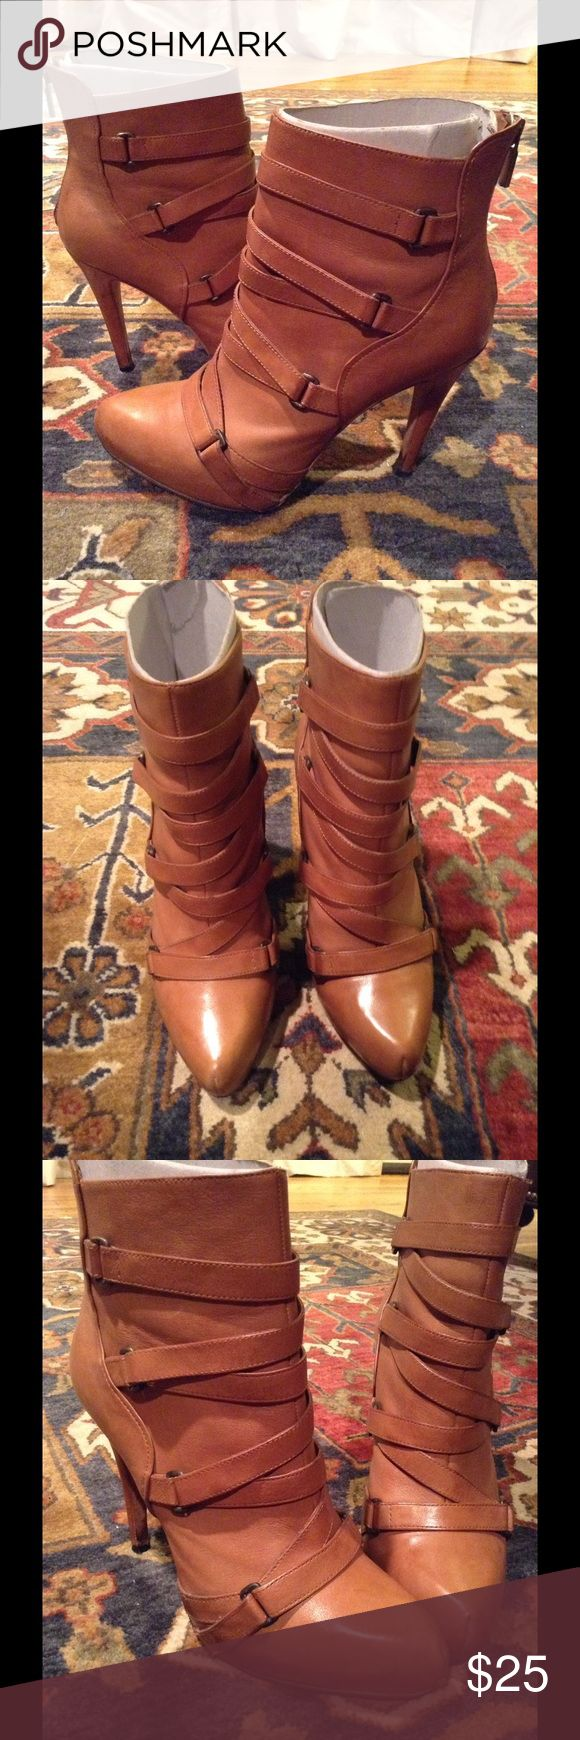 Boutique 9 ankle Boots w/ Strap detail, cognac ❤️ Ankle Boots w/ strap detail, hidden platform, 4 1/2 inch heel. Fits me good and My shoe size is an 8 1/2. These booties have been resoled and Heel caps have been replaced! Pre-Loved... Great Condition!! 😍❤️😍 Boutique 9 Shoes Ankle Boots & Booties